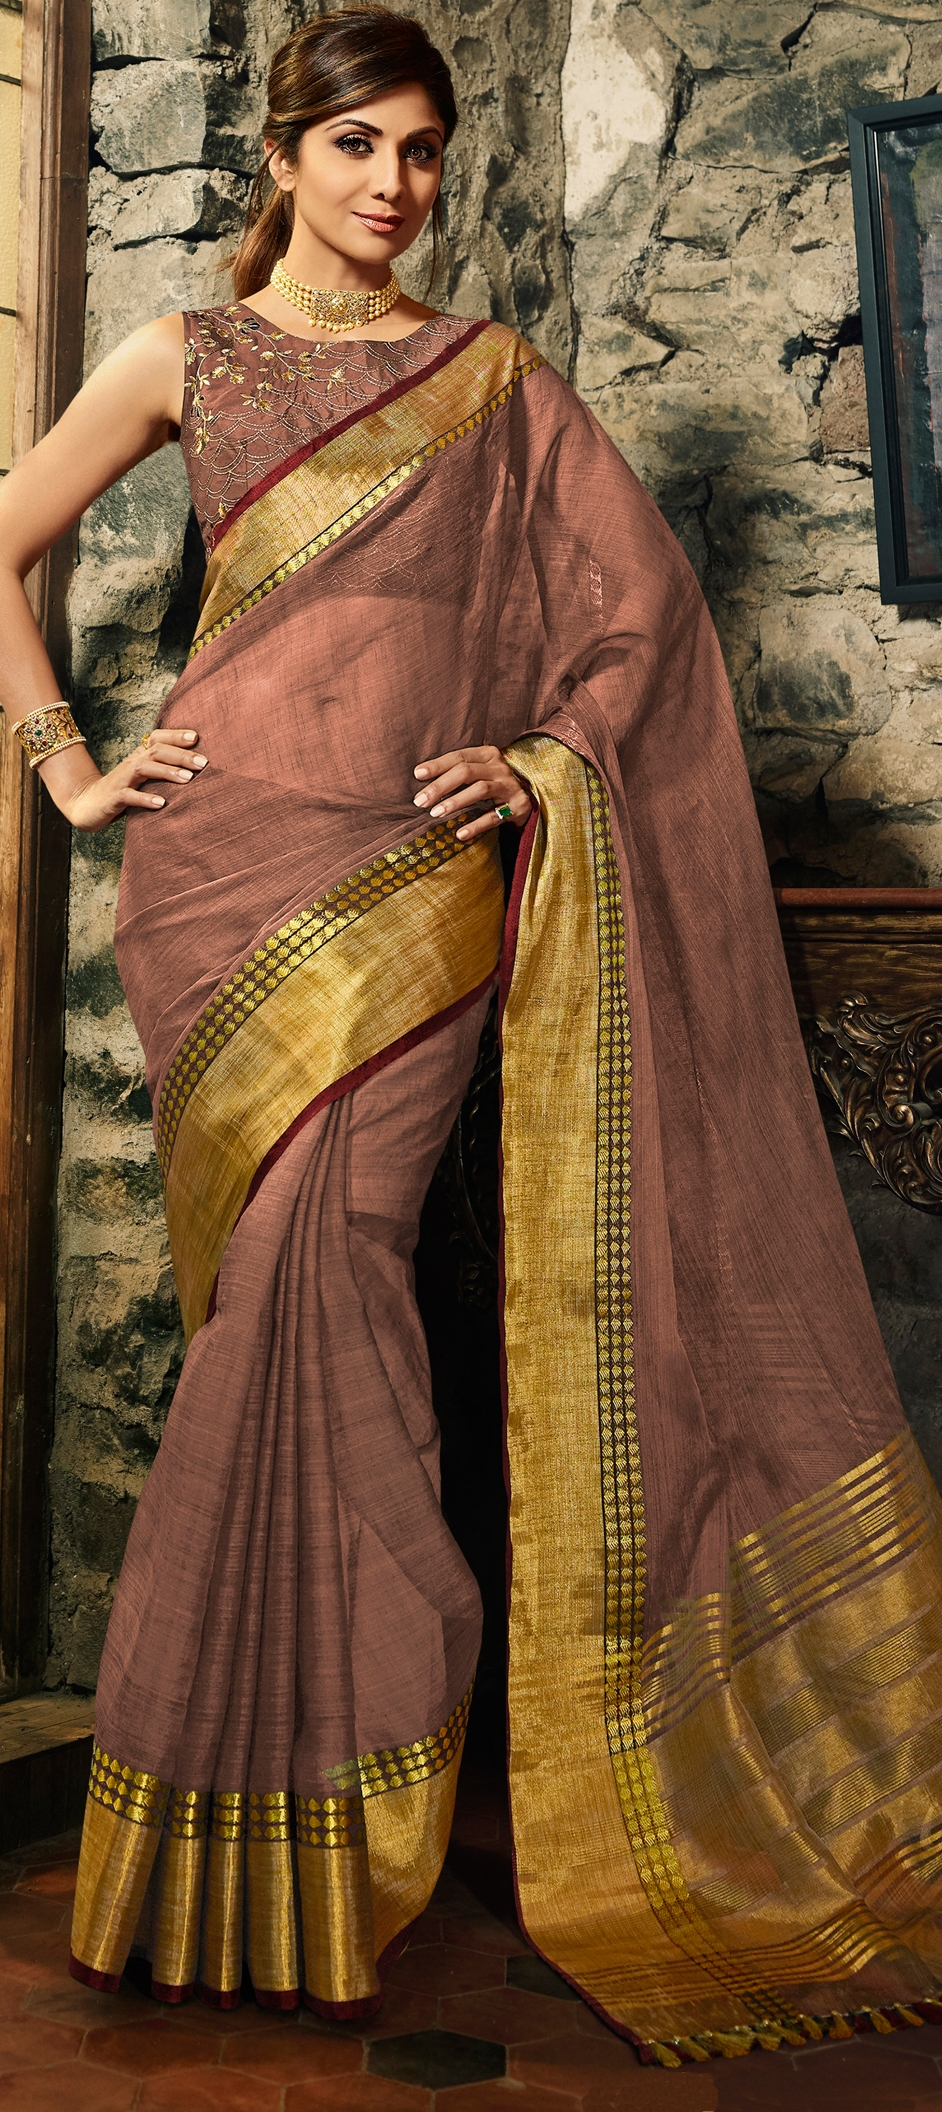 WHY ARE SILK SAREES THE HOT CHOICE FOR WEDDING?